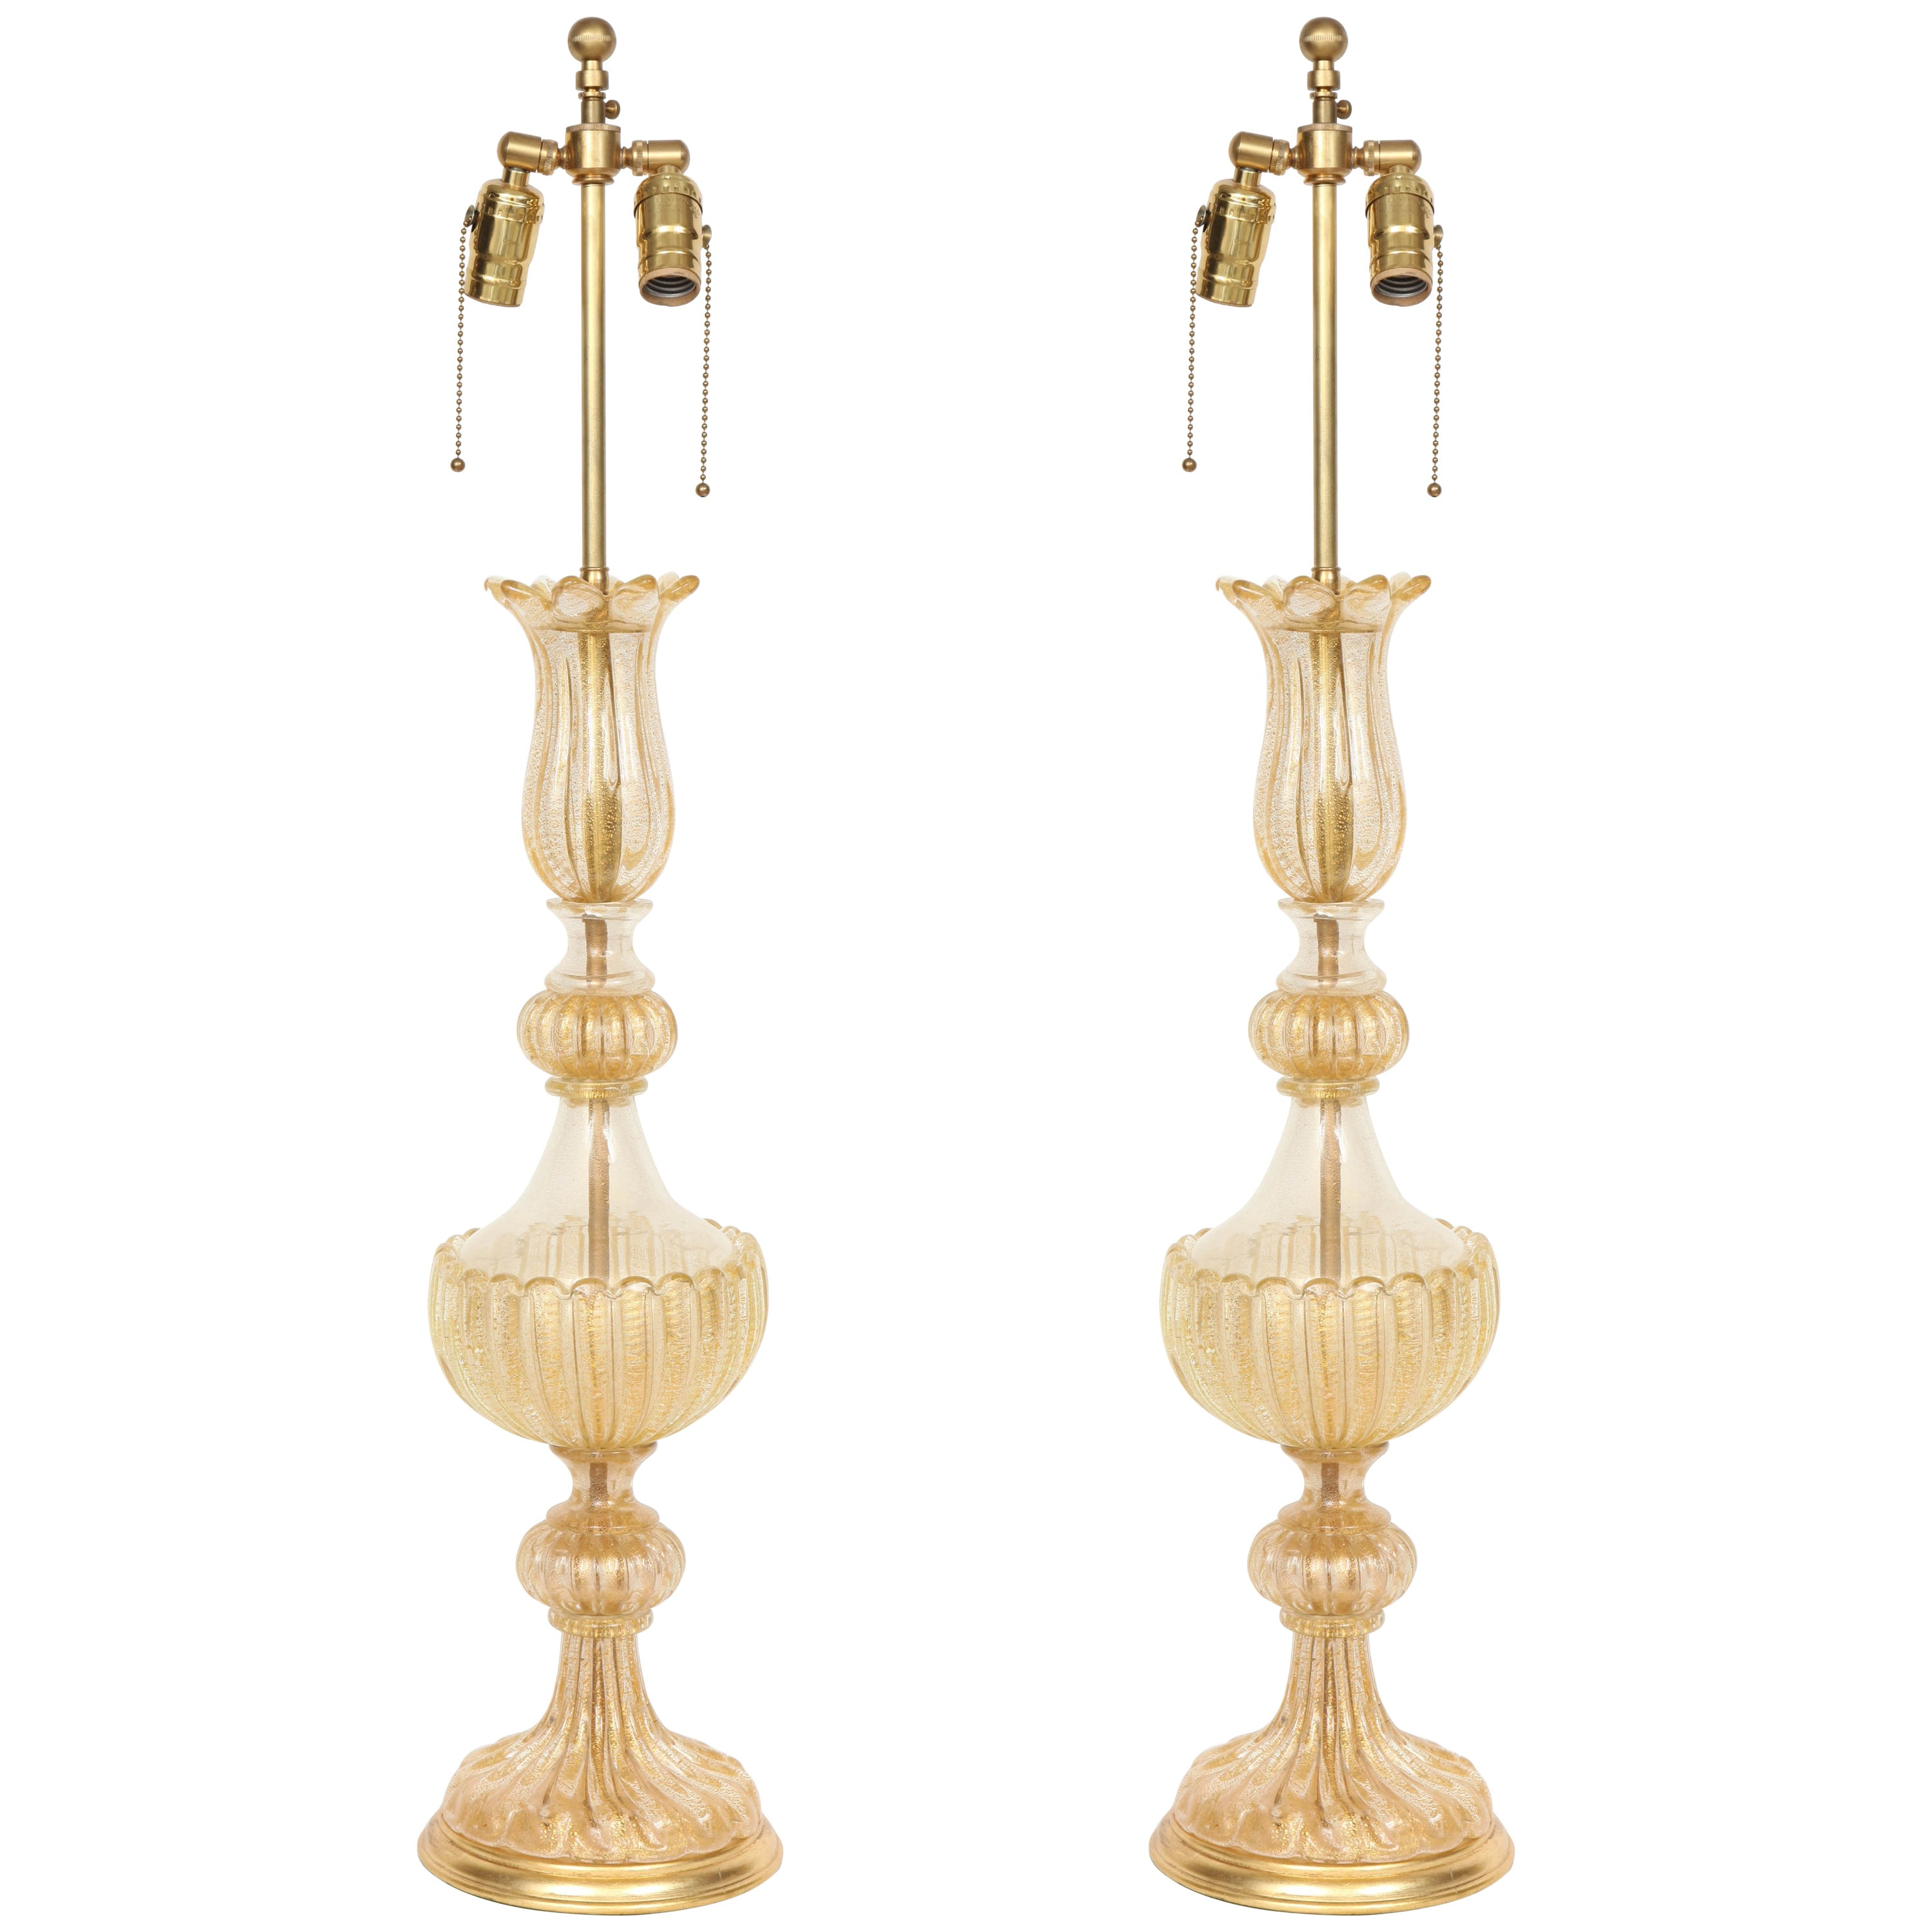 Barovier 22kt Gold Fleck Inclusion Murano Glass Lamps